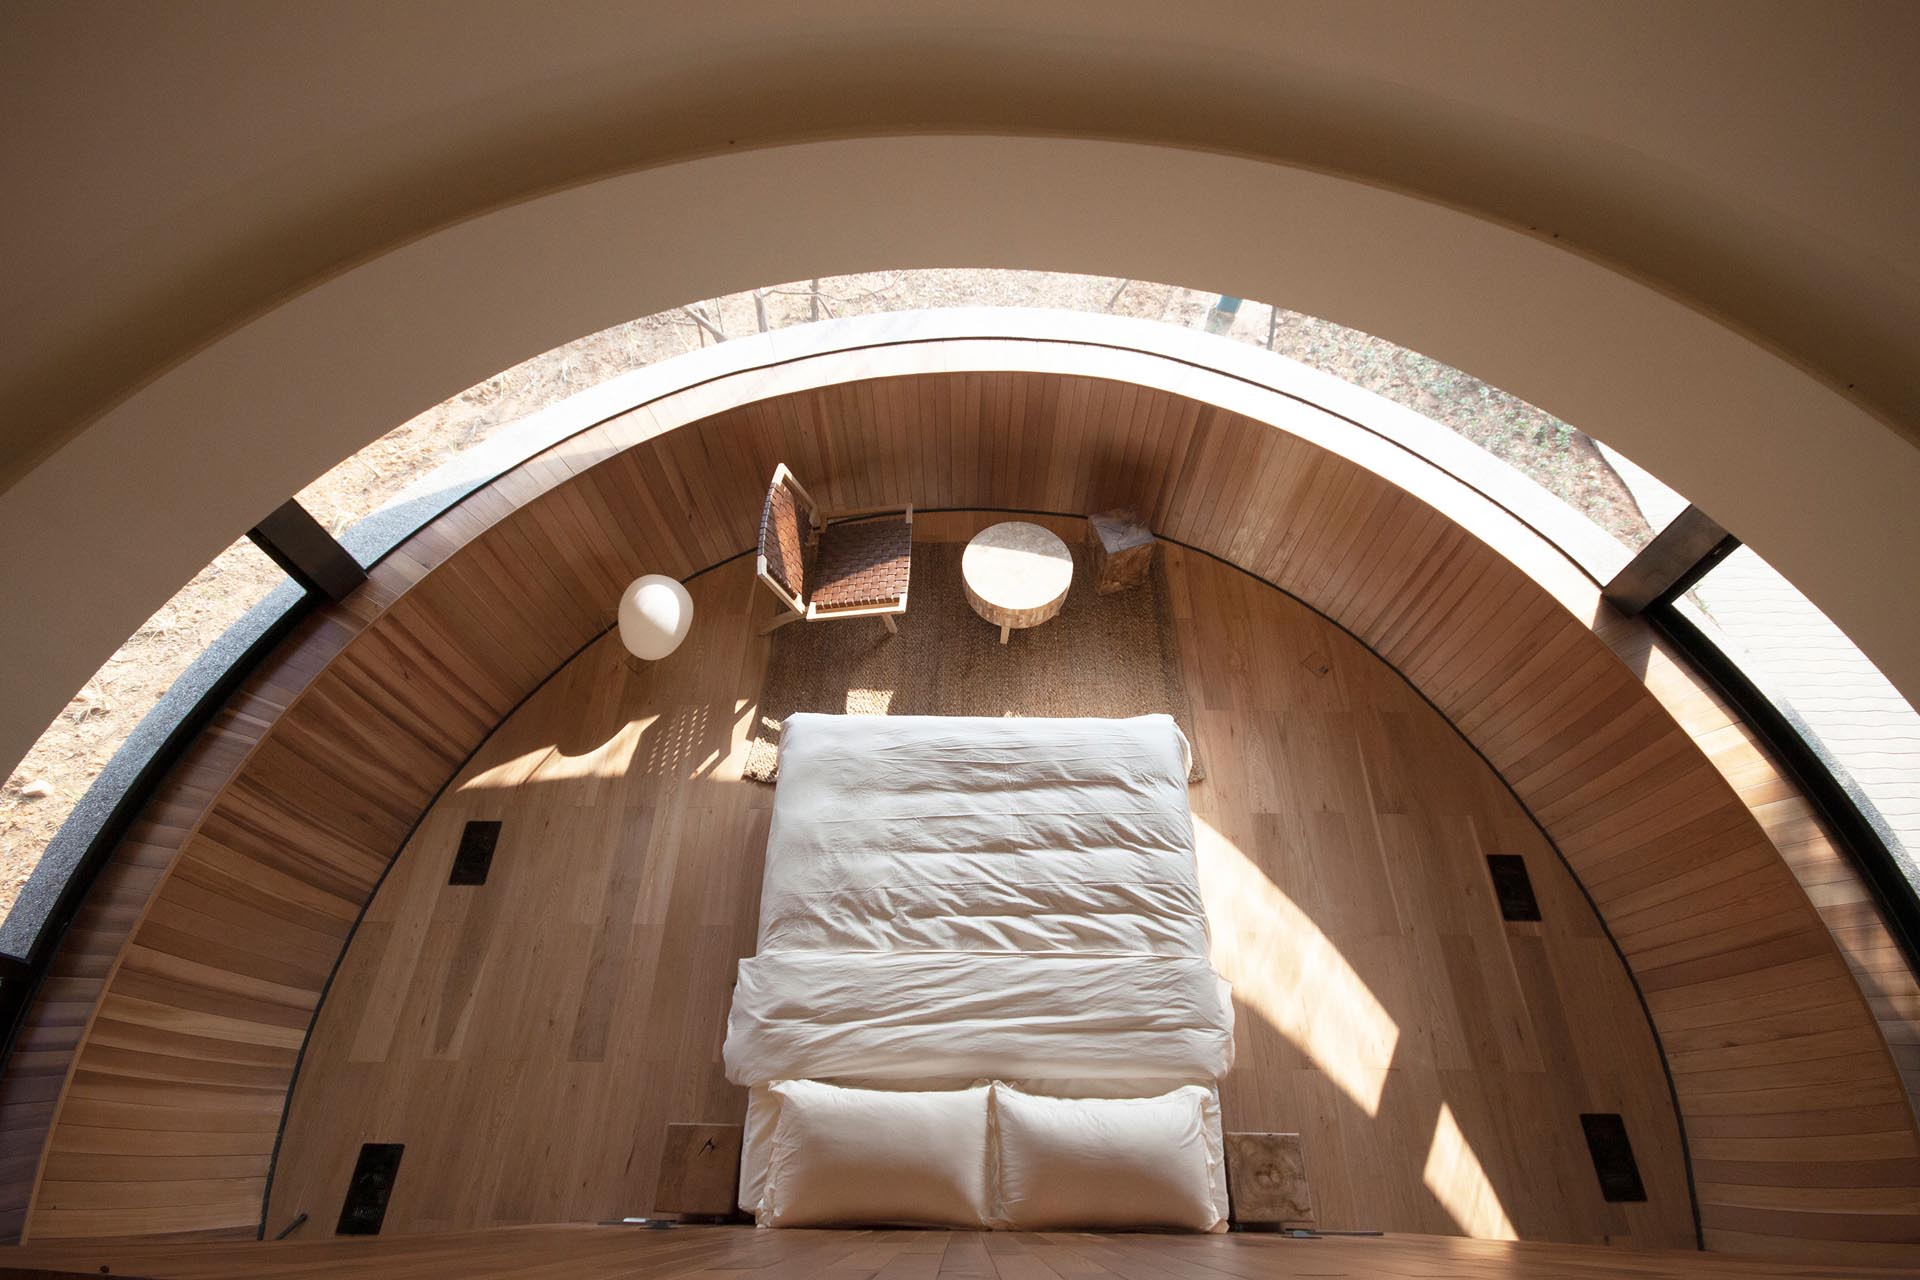 Inside this modern cabin, there's a bedroom that's designed to take advantage of the panoramic window that's curved to the shape of the wall.